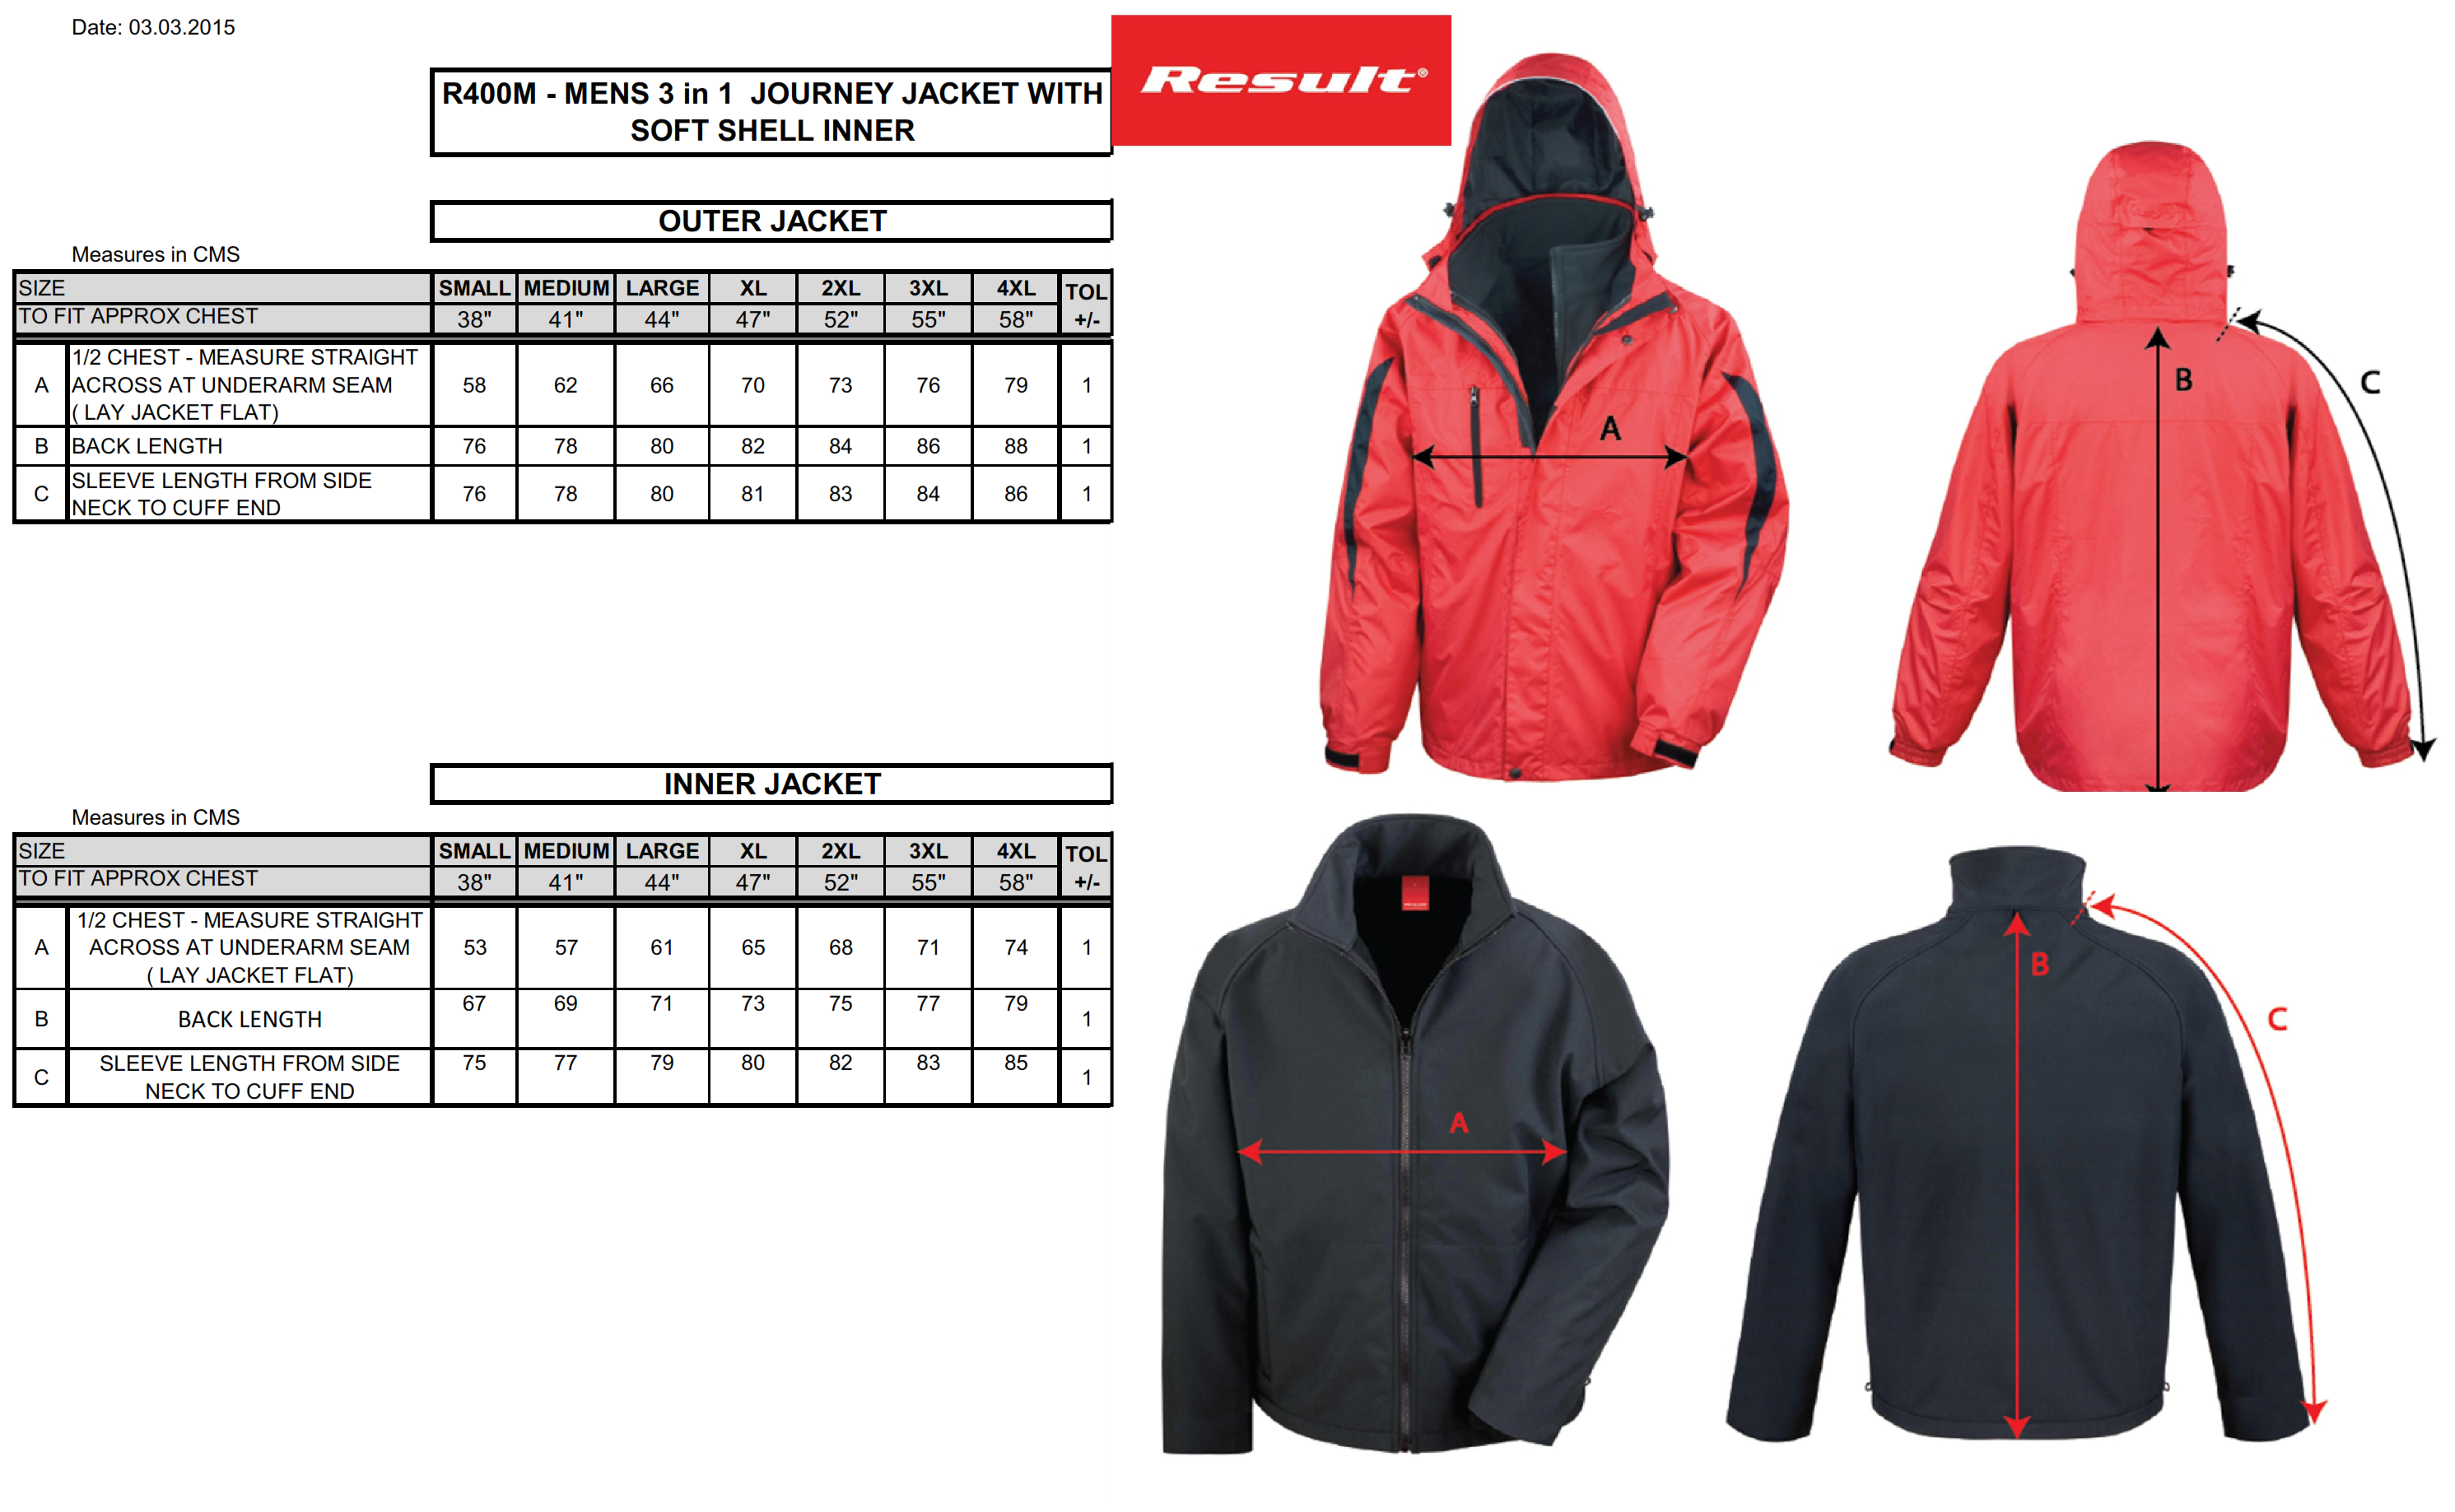 Result: 3-in-1 Journey Jacket R400M